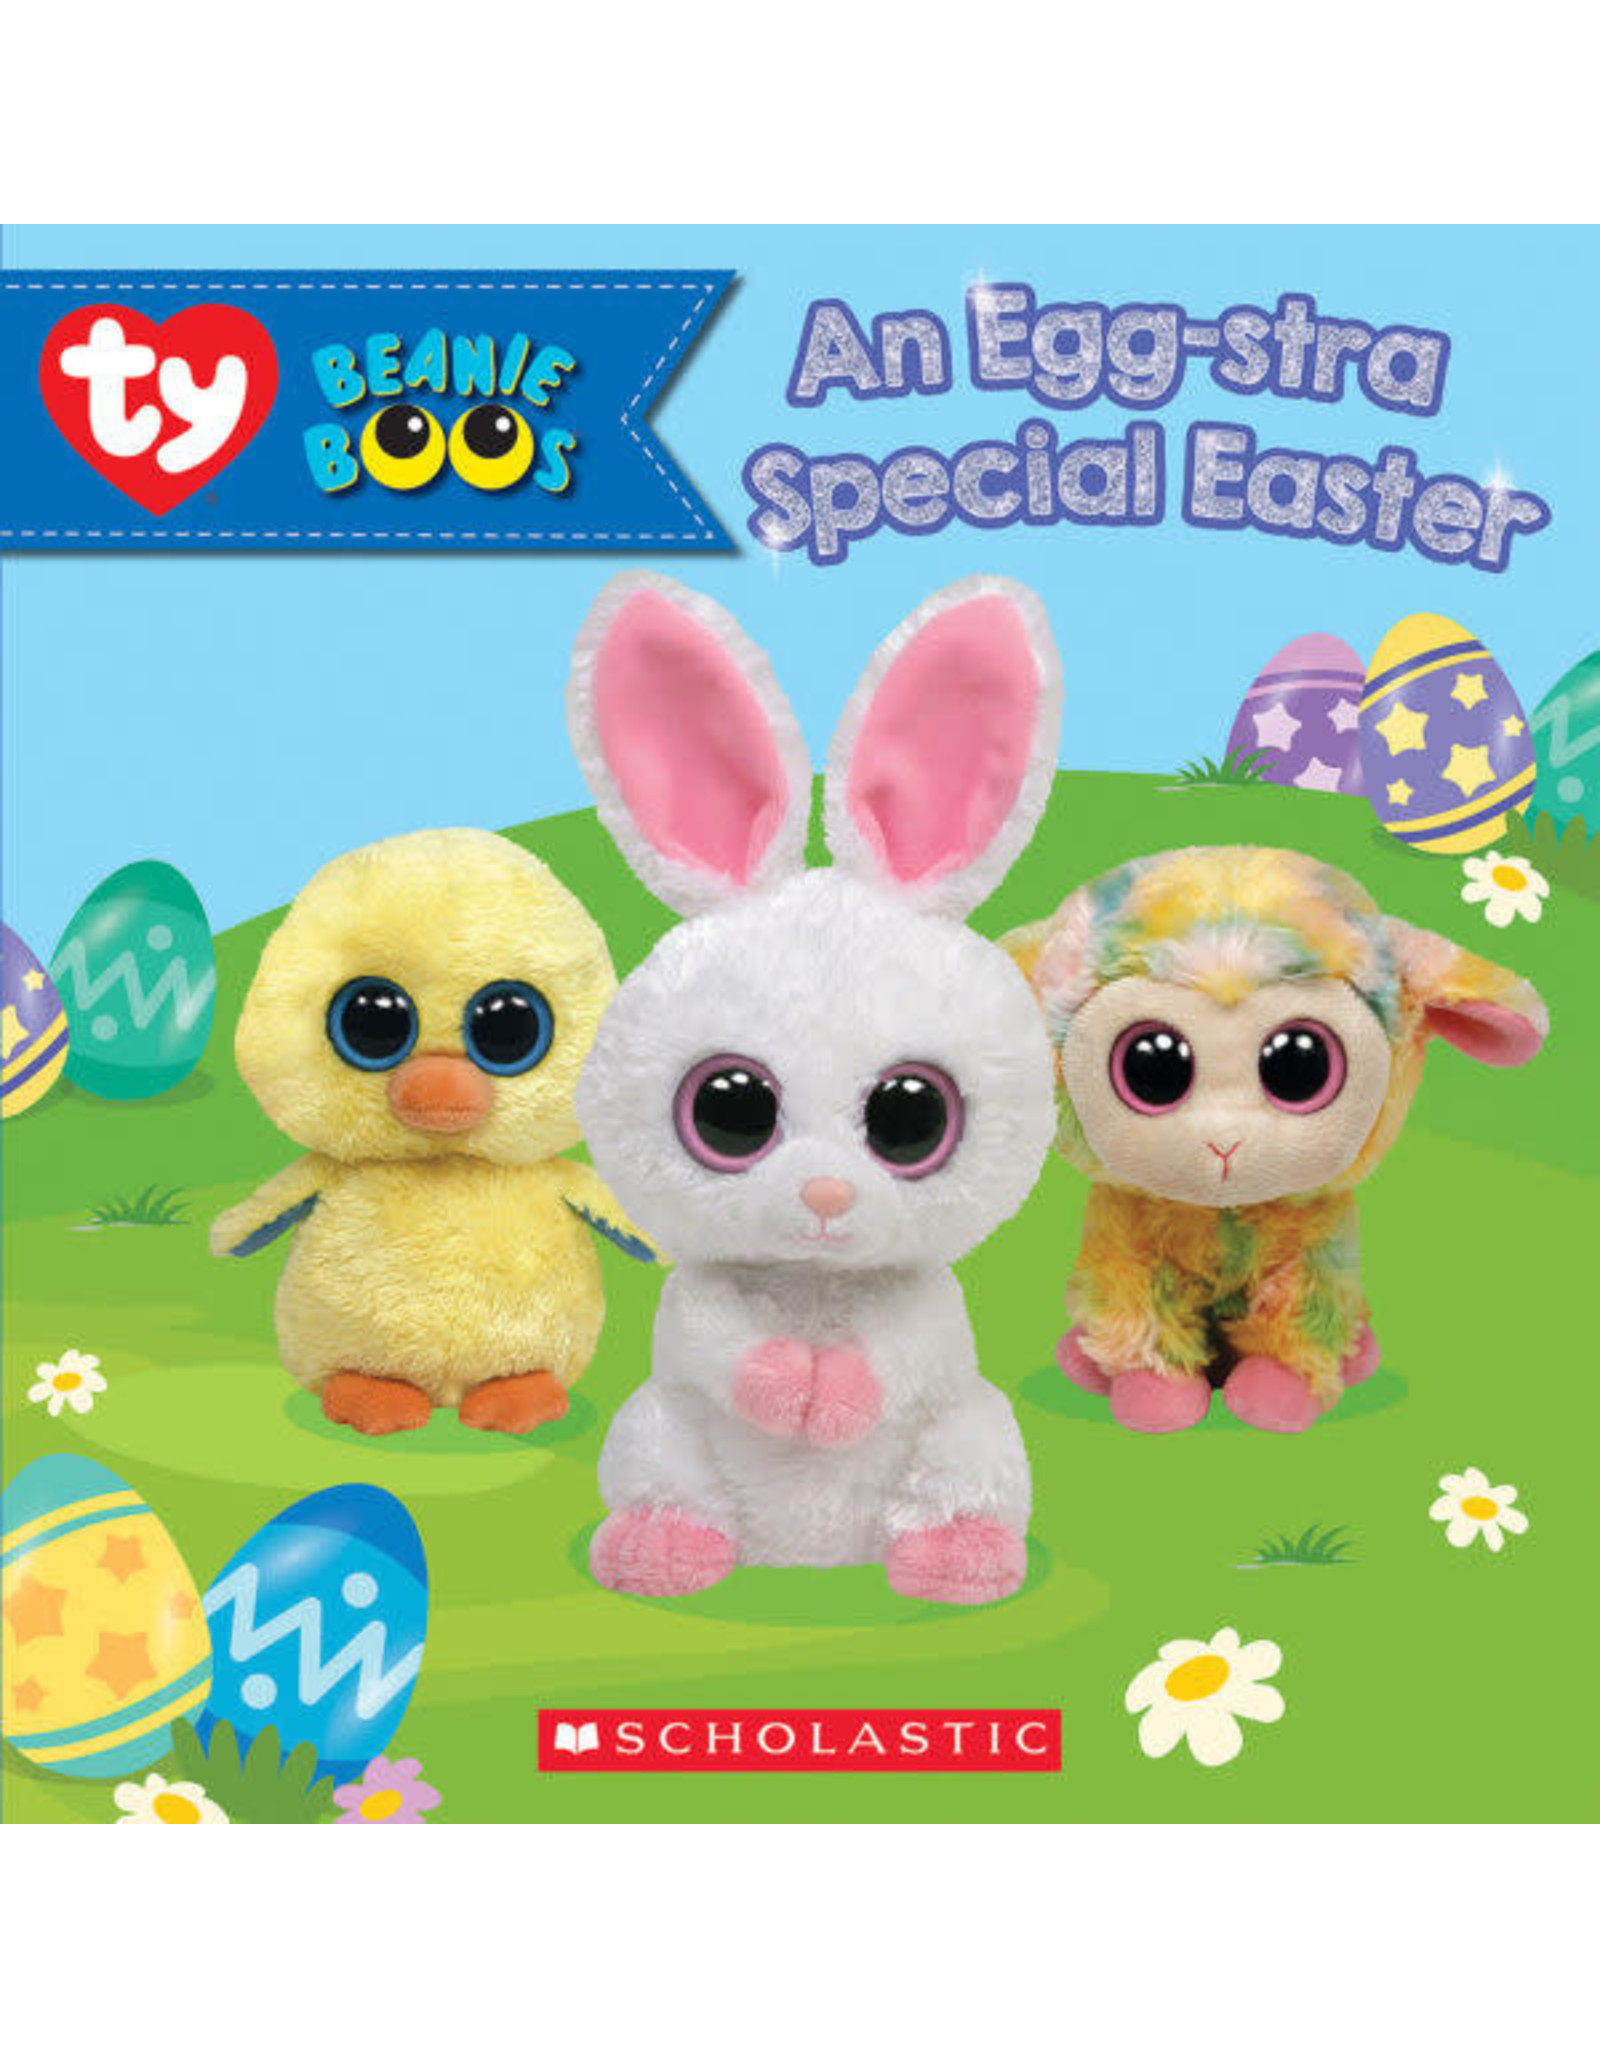 Scholastic Beanie Boos: An Egg-Stra Special Easter